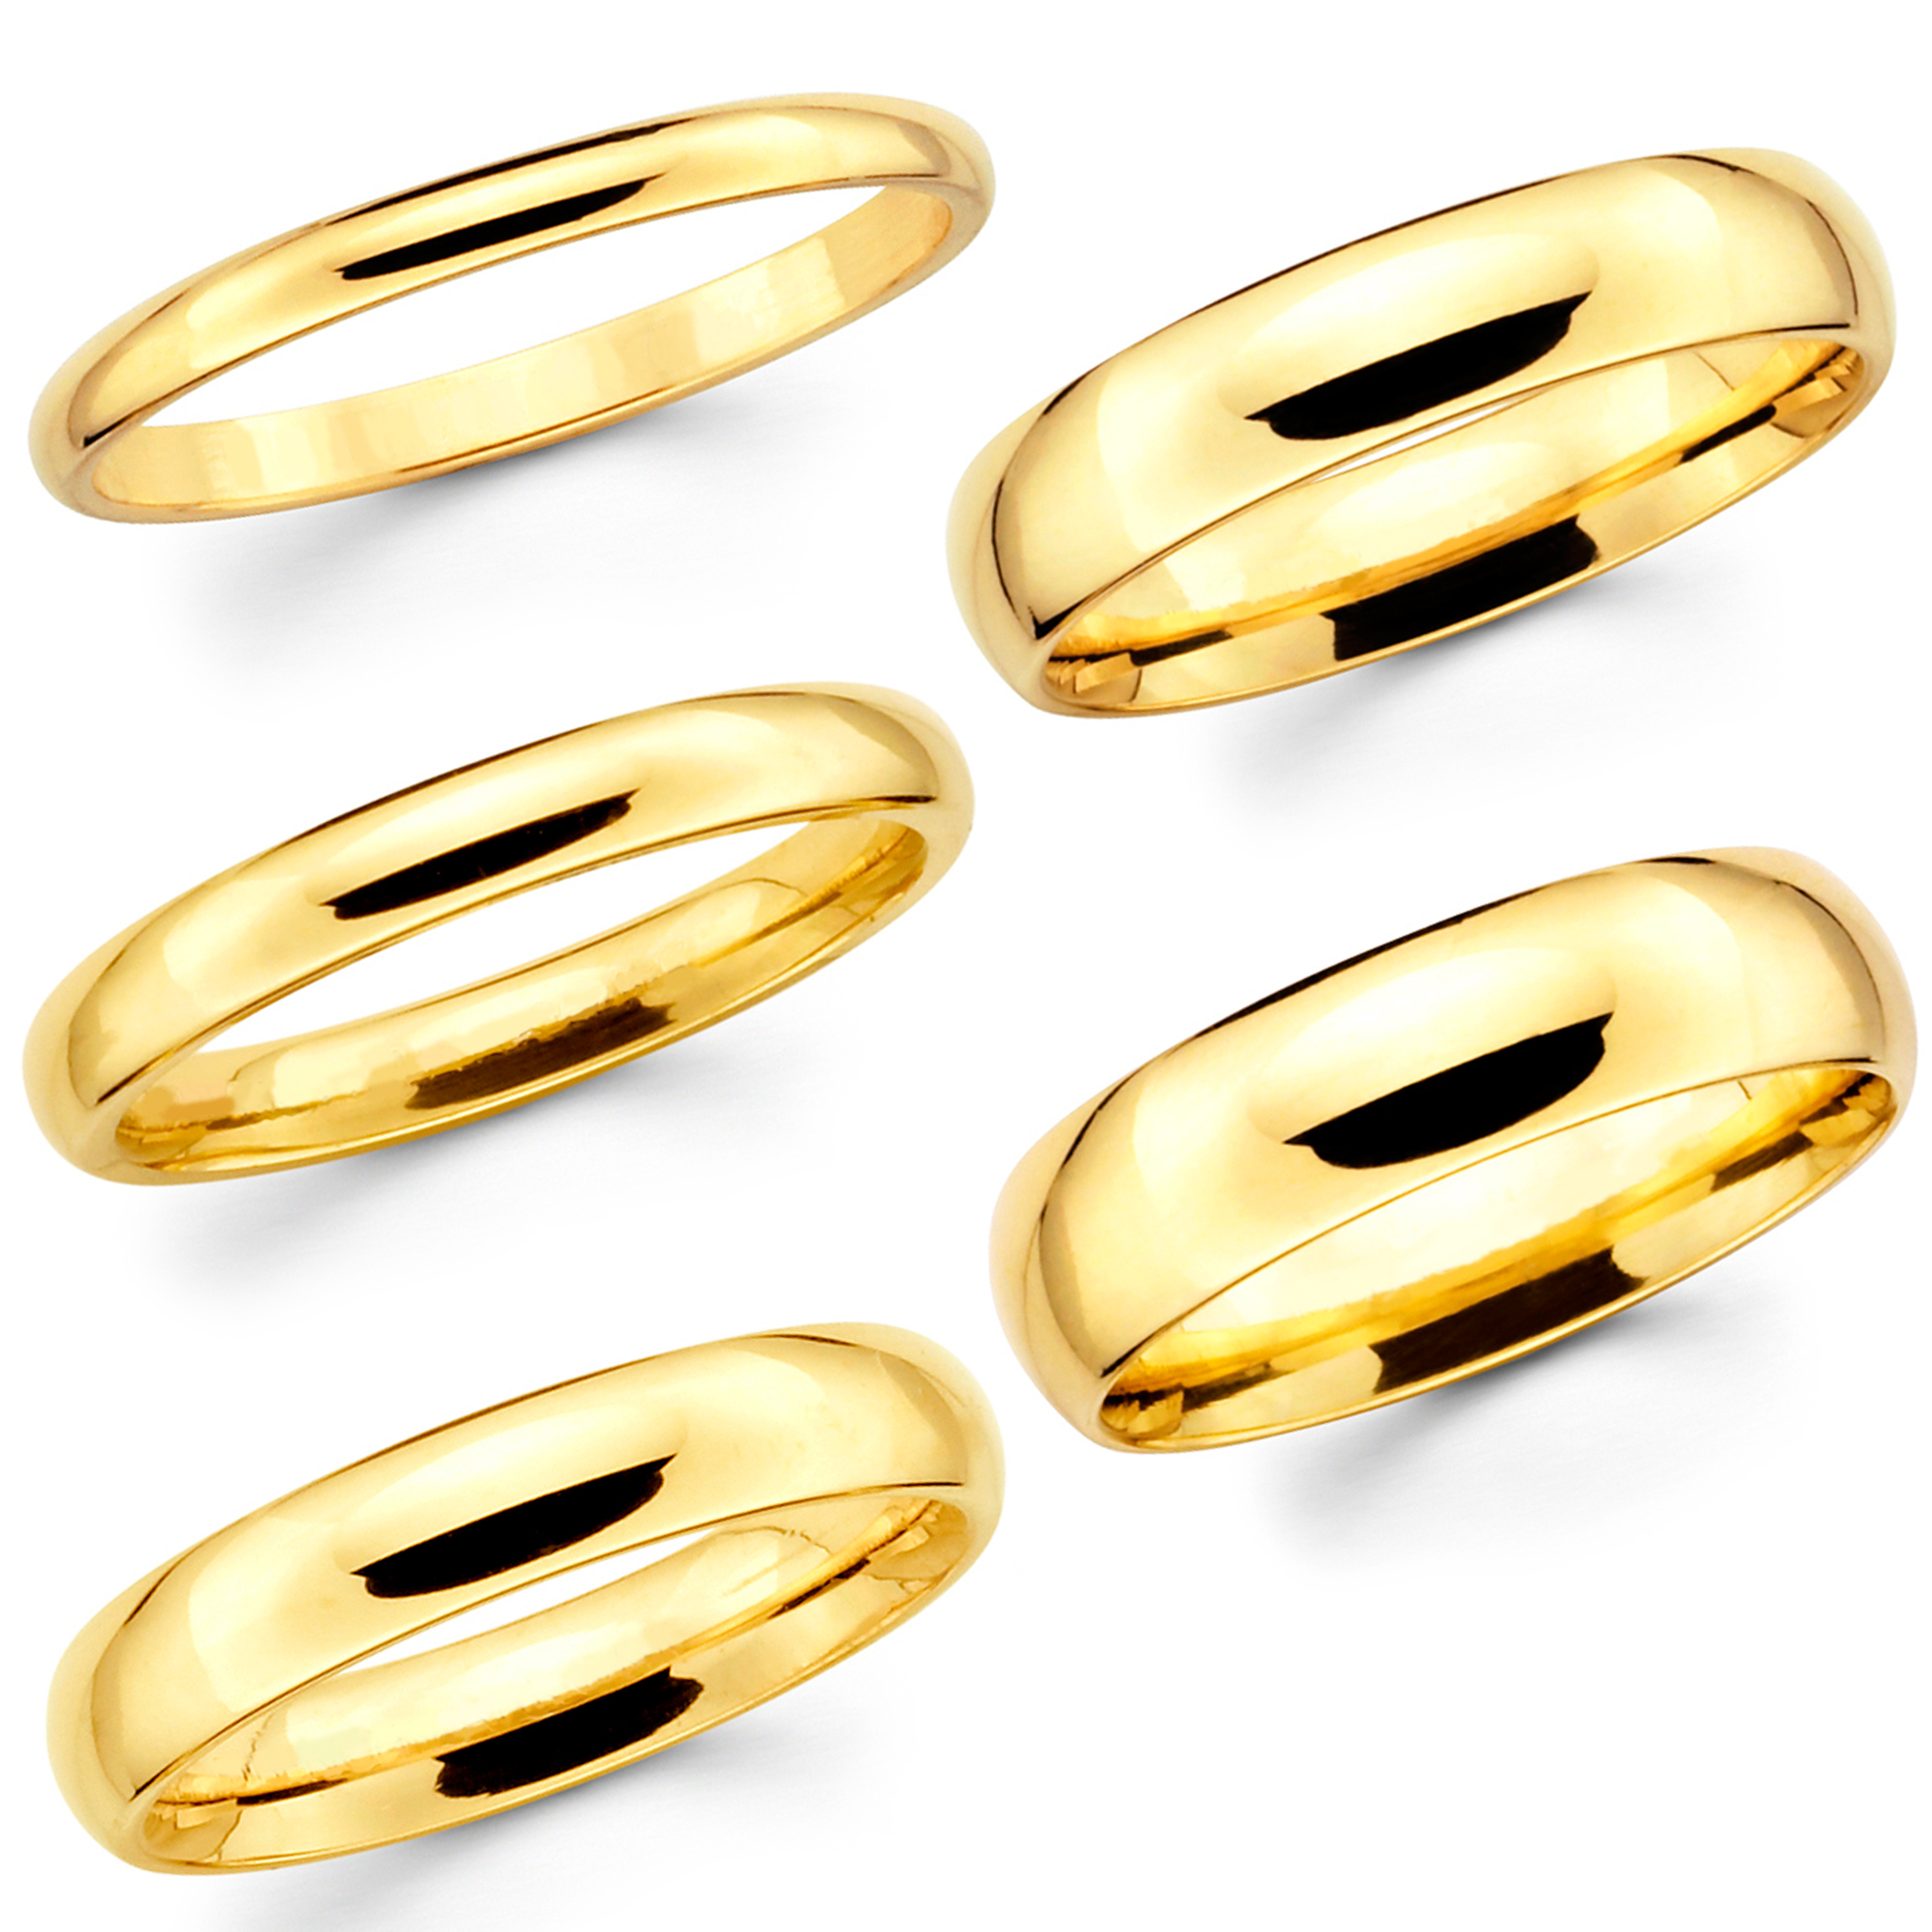 14K Solid Yellow Gold Comfort Fit Wedding Band